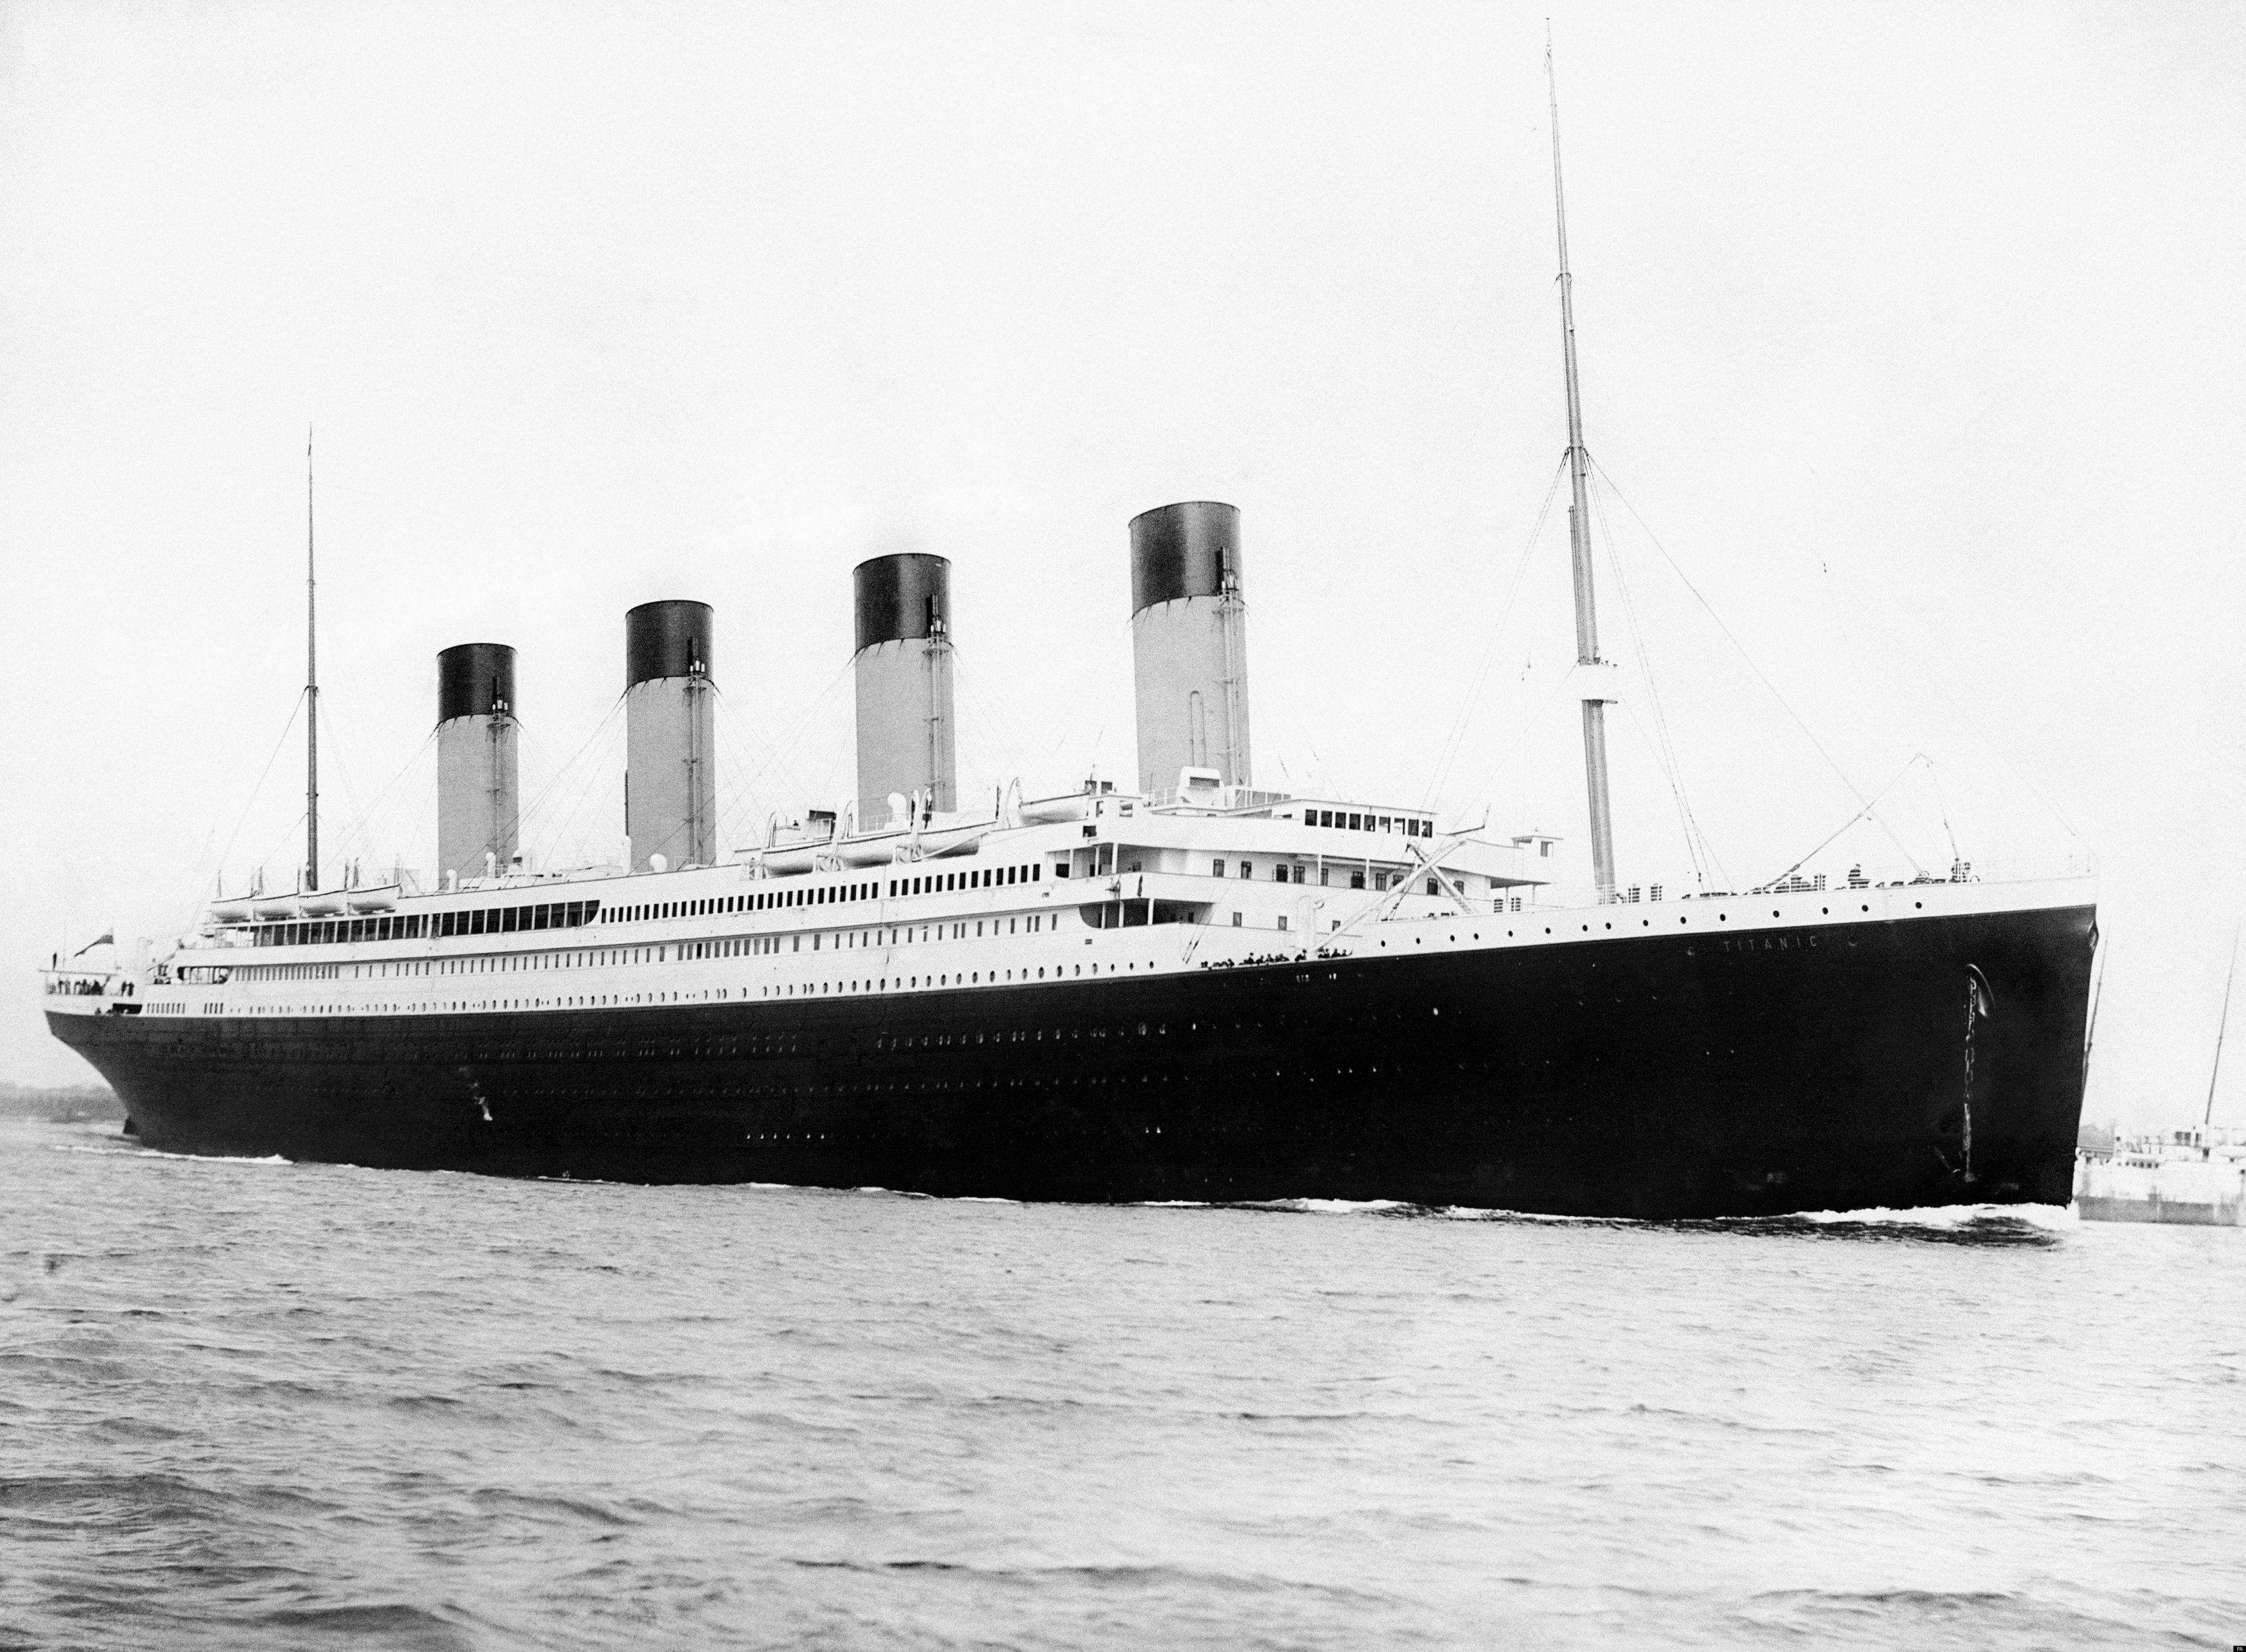 Nearly 105 years after the Titanic sank, two companies have announced plans to provide deep-sea tours of the wreckage to